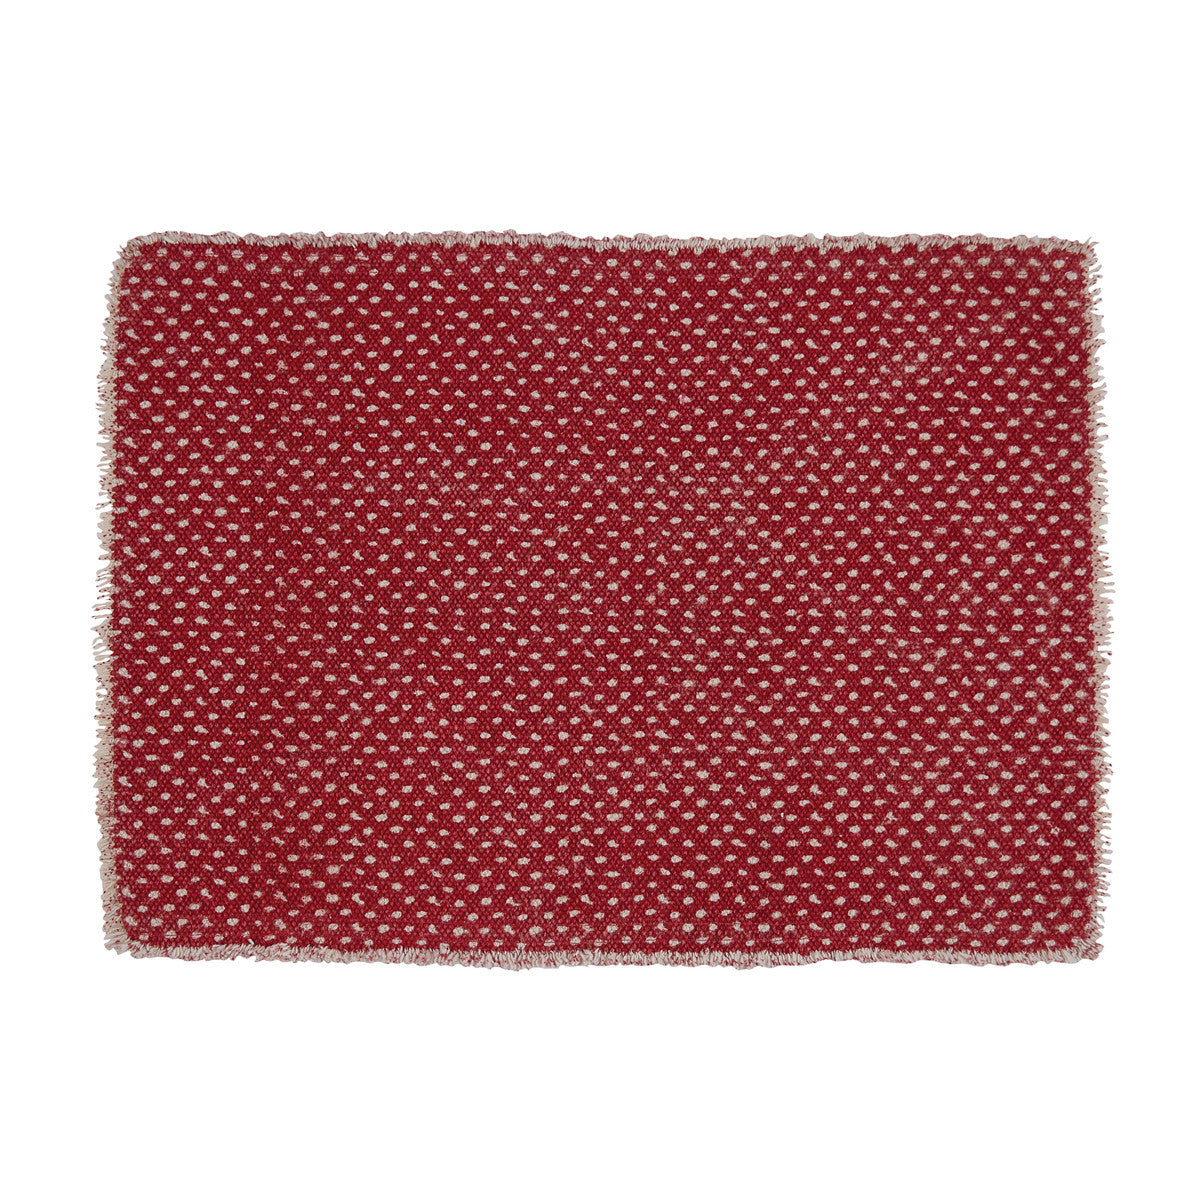 MINI DOTS PRINT PLACEMAT - RED